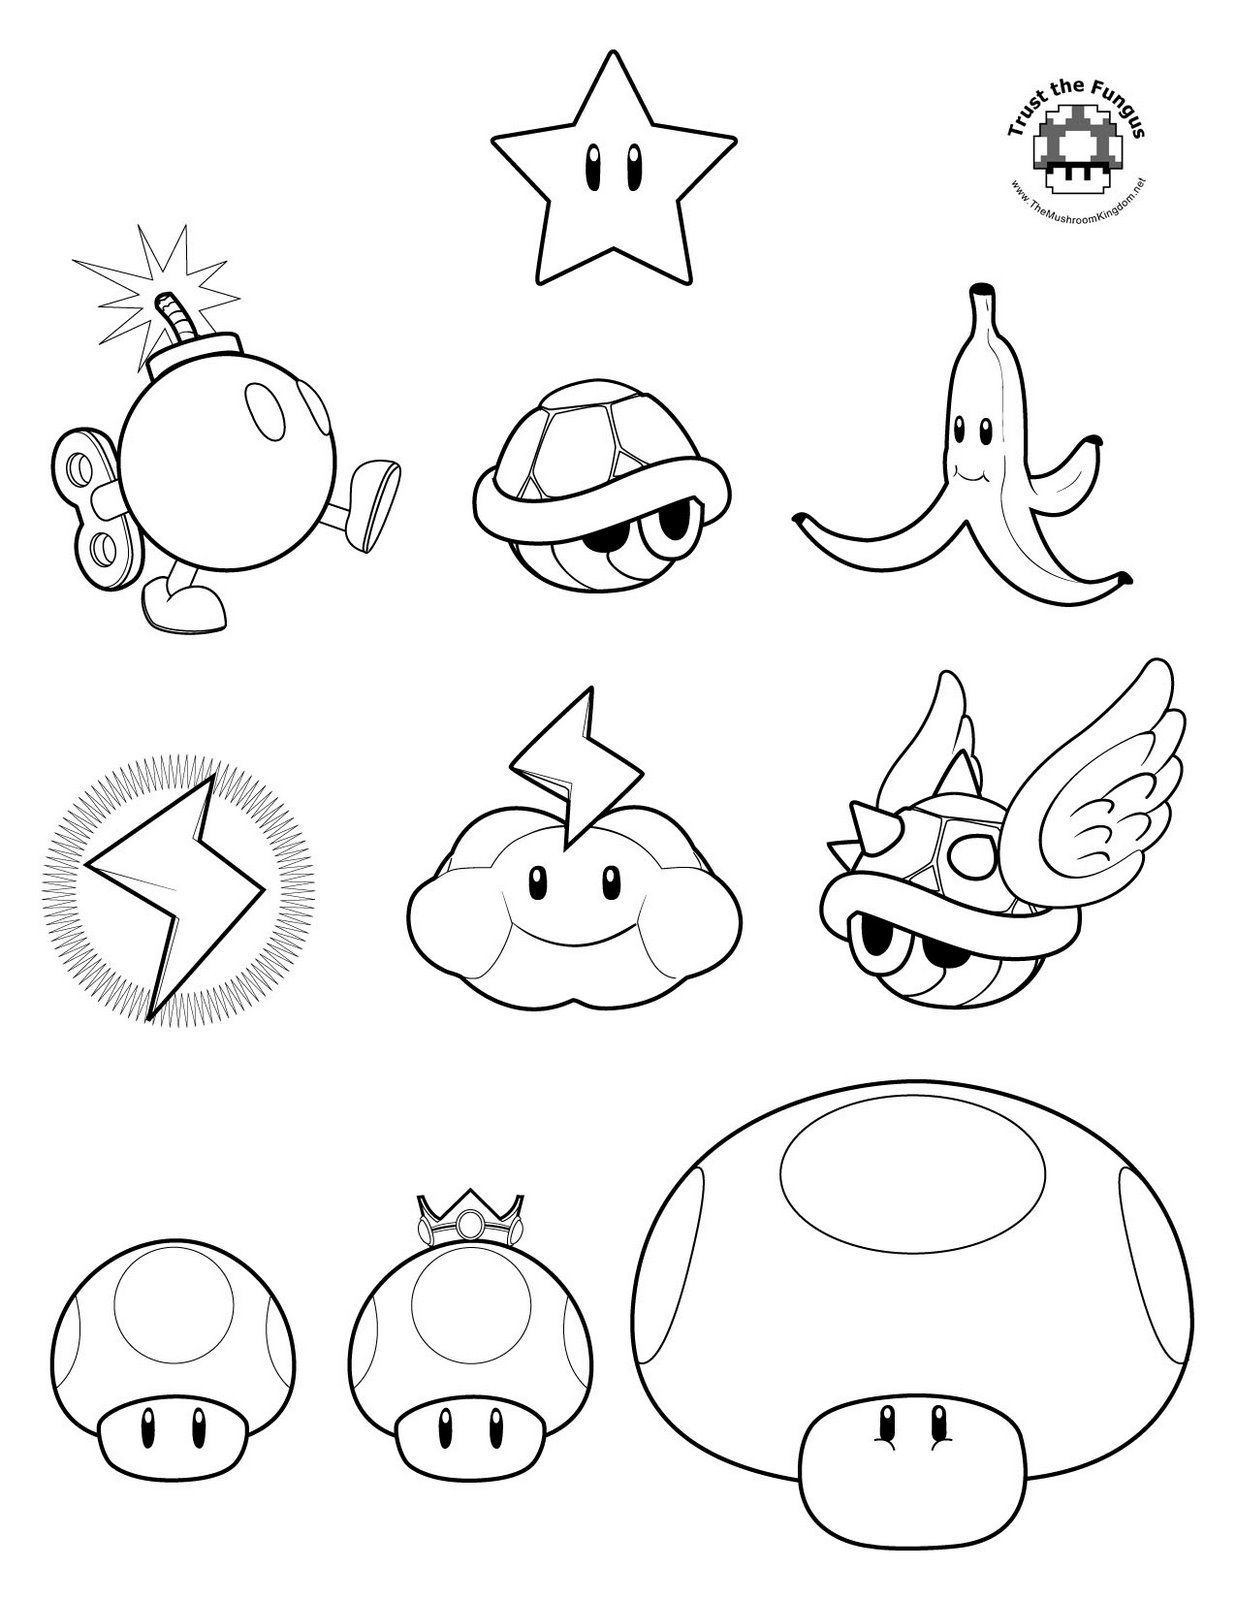 colering pages Mario Kart Coloring Pages